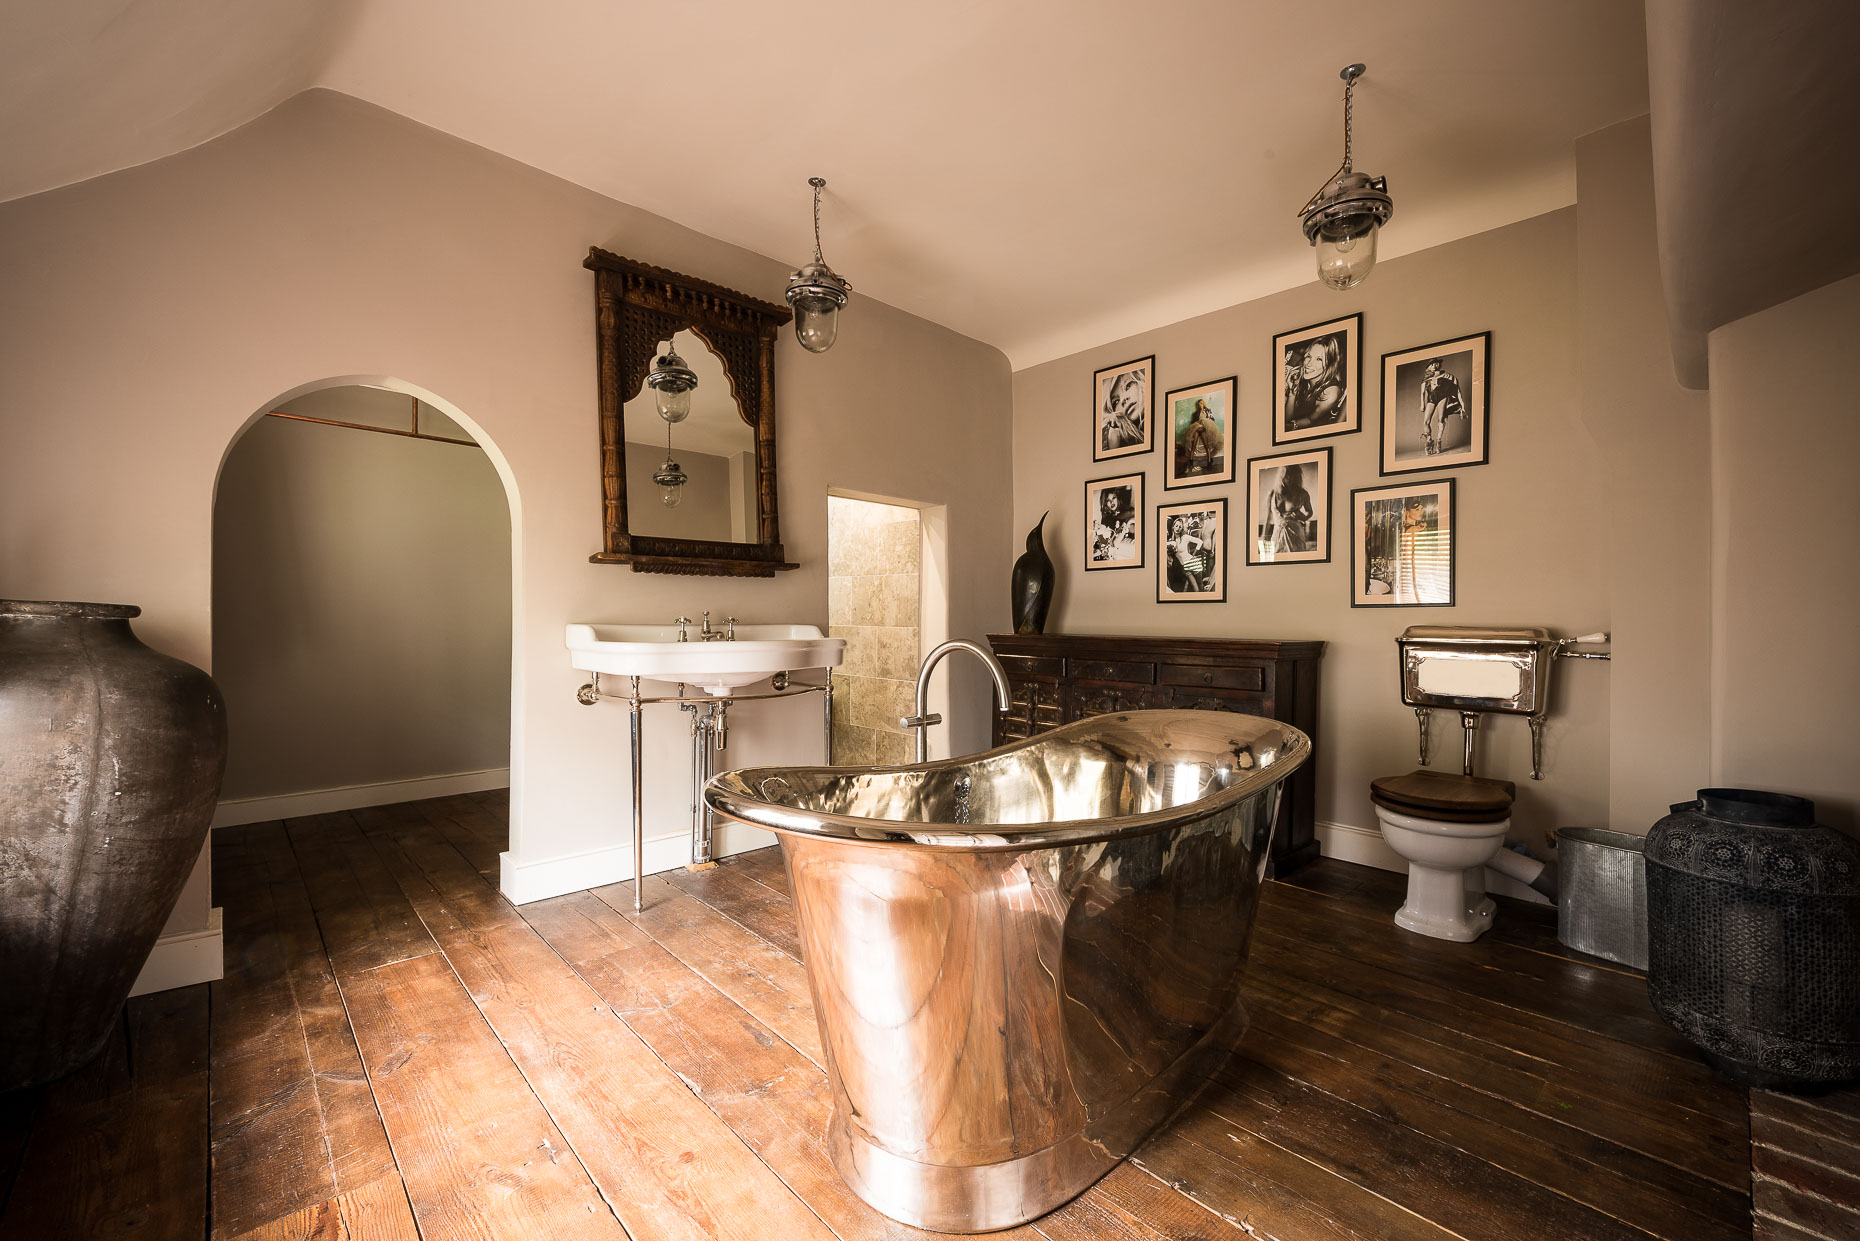 nickel-bath-tub-luxury-bathroom-hertfordshire-interior-william-holland-argenta-photography-20